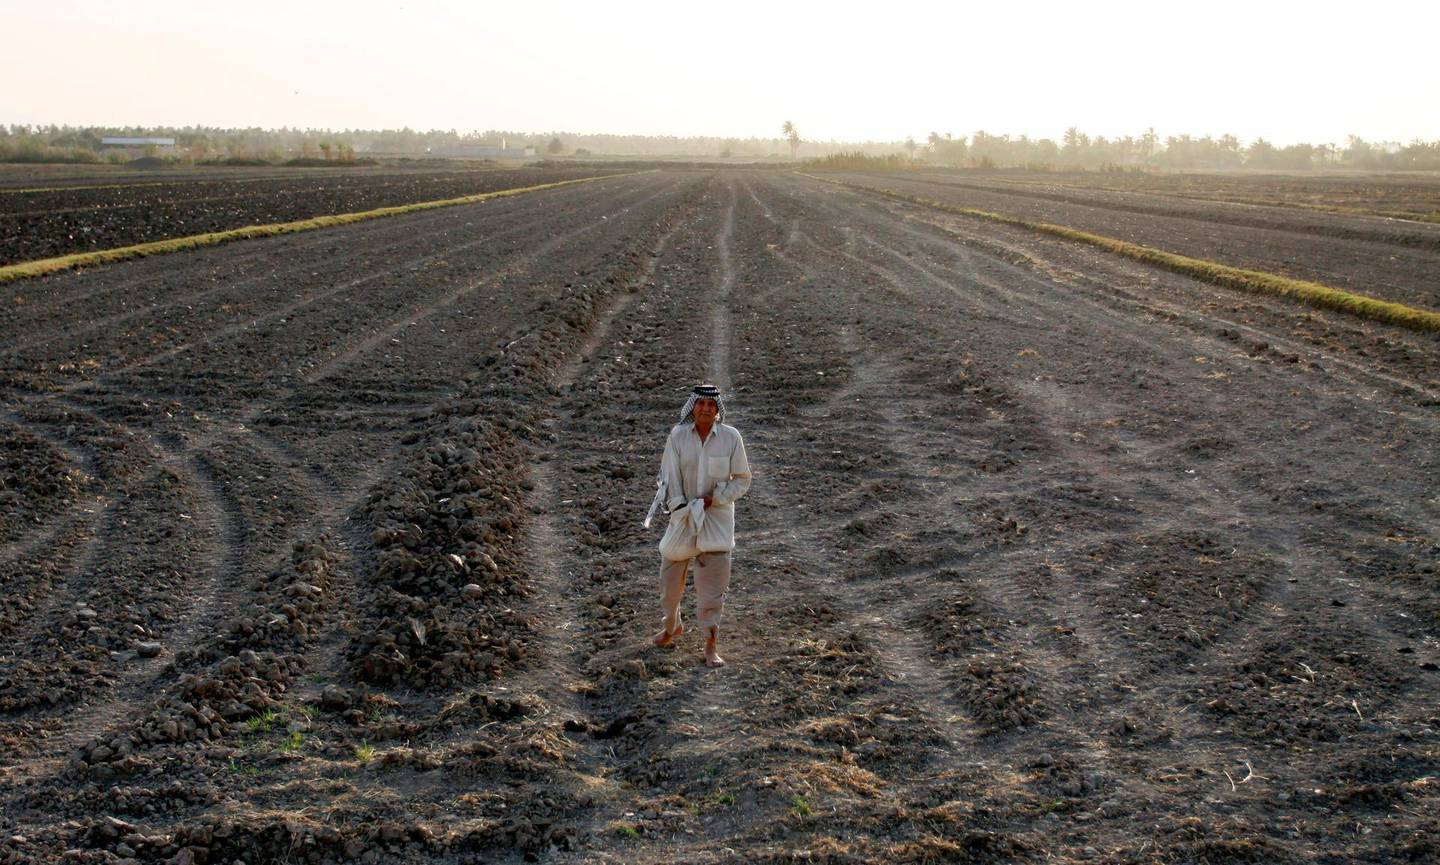 An Iraqi man stands on a dry field in an area affected by drought in the Mishkhab region, central Iraq, some twenty-five kilometres from Najaf, on July 2, 2018. Facing an unusually harsh drought, the agriculture ministry last month suspended the cultivation of rice, corn and other cereals, which need large quantities of water. The decision has slashed the income of amber rice farmers, who usually earn between 300,000 and 500,000 dinars ($240 to $400) a year per dunum (quarter-acre, 0.1 hectares) of land. / AFP / Haidar HAMDANI